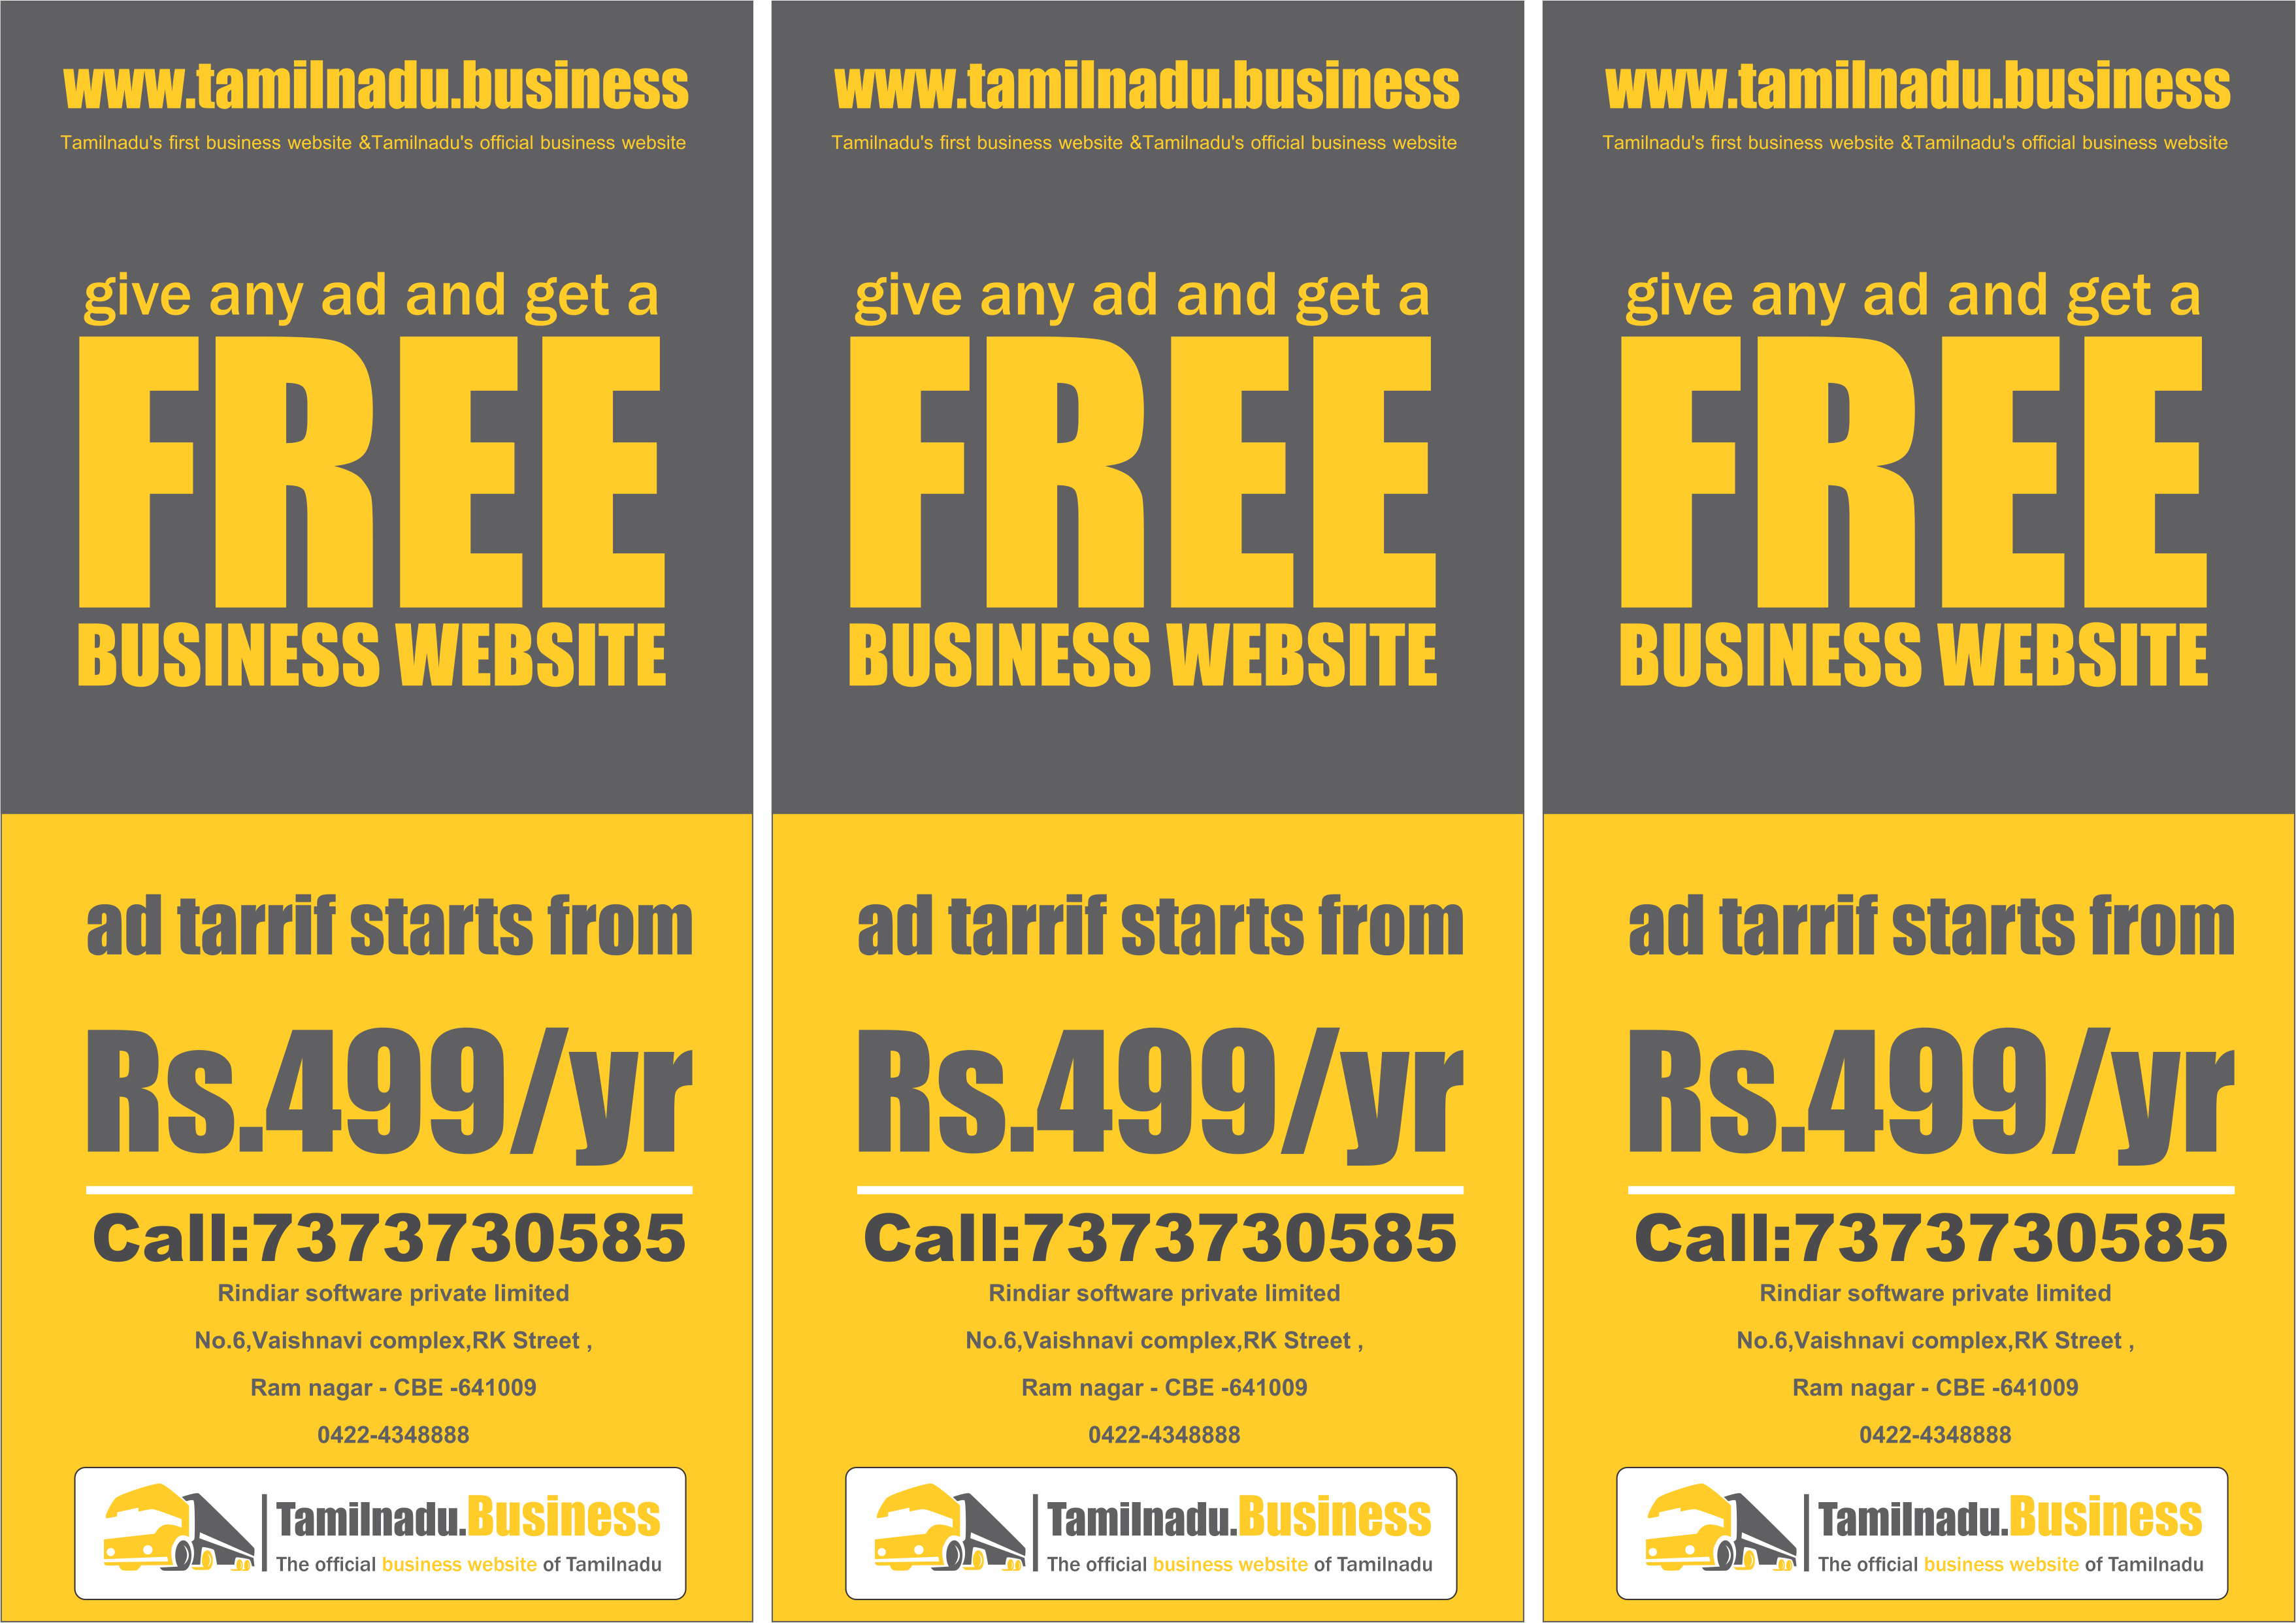 business yellow pages yello pages theopportunityco